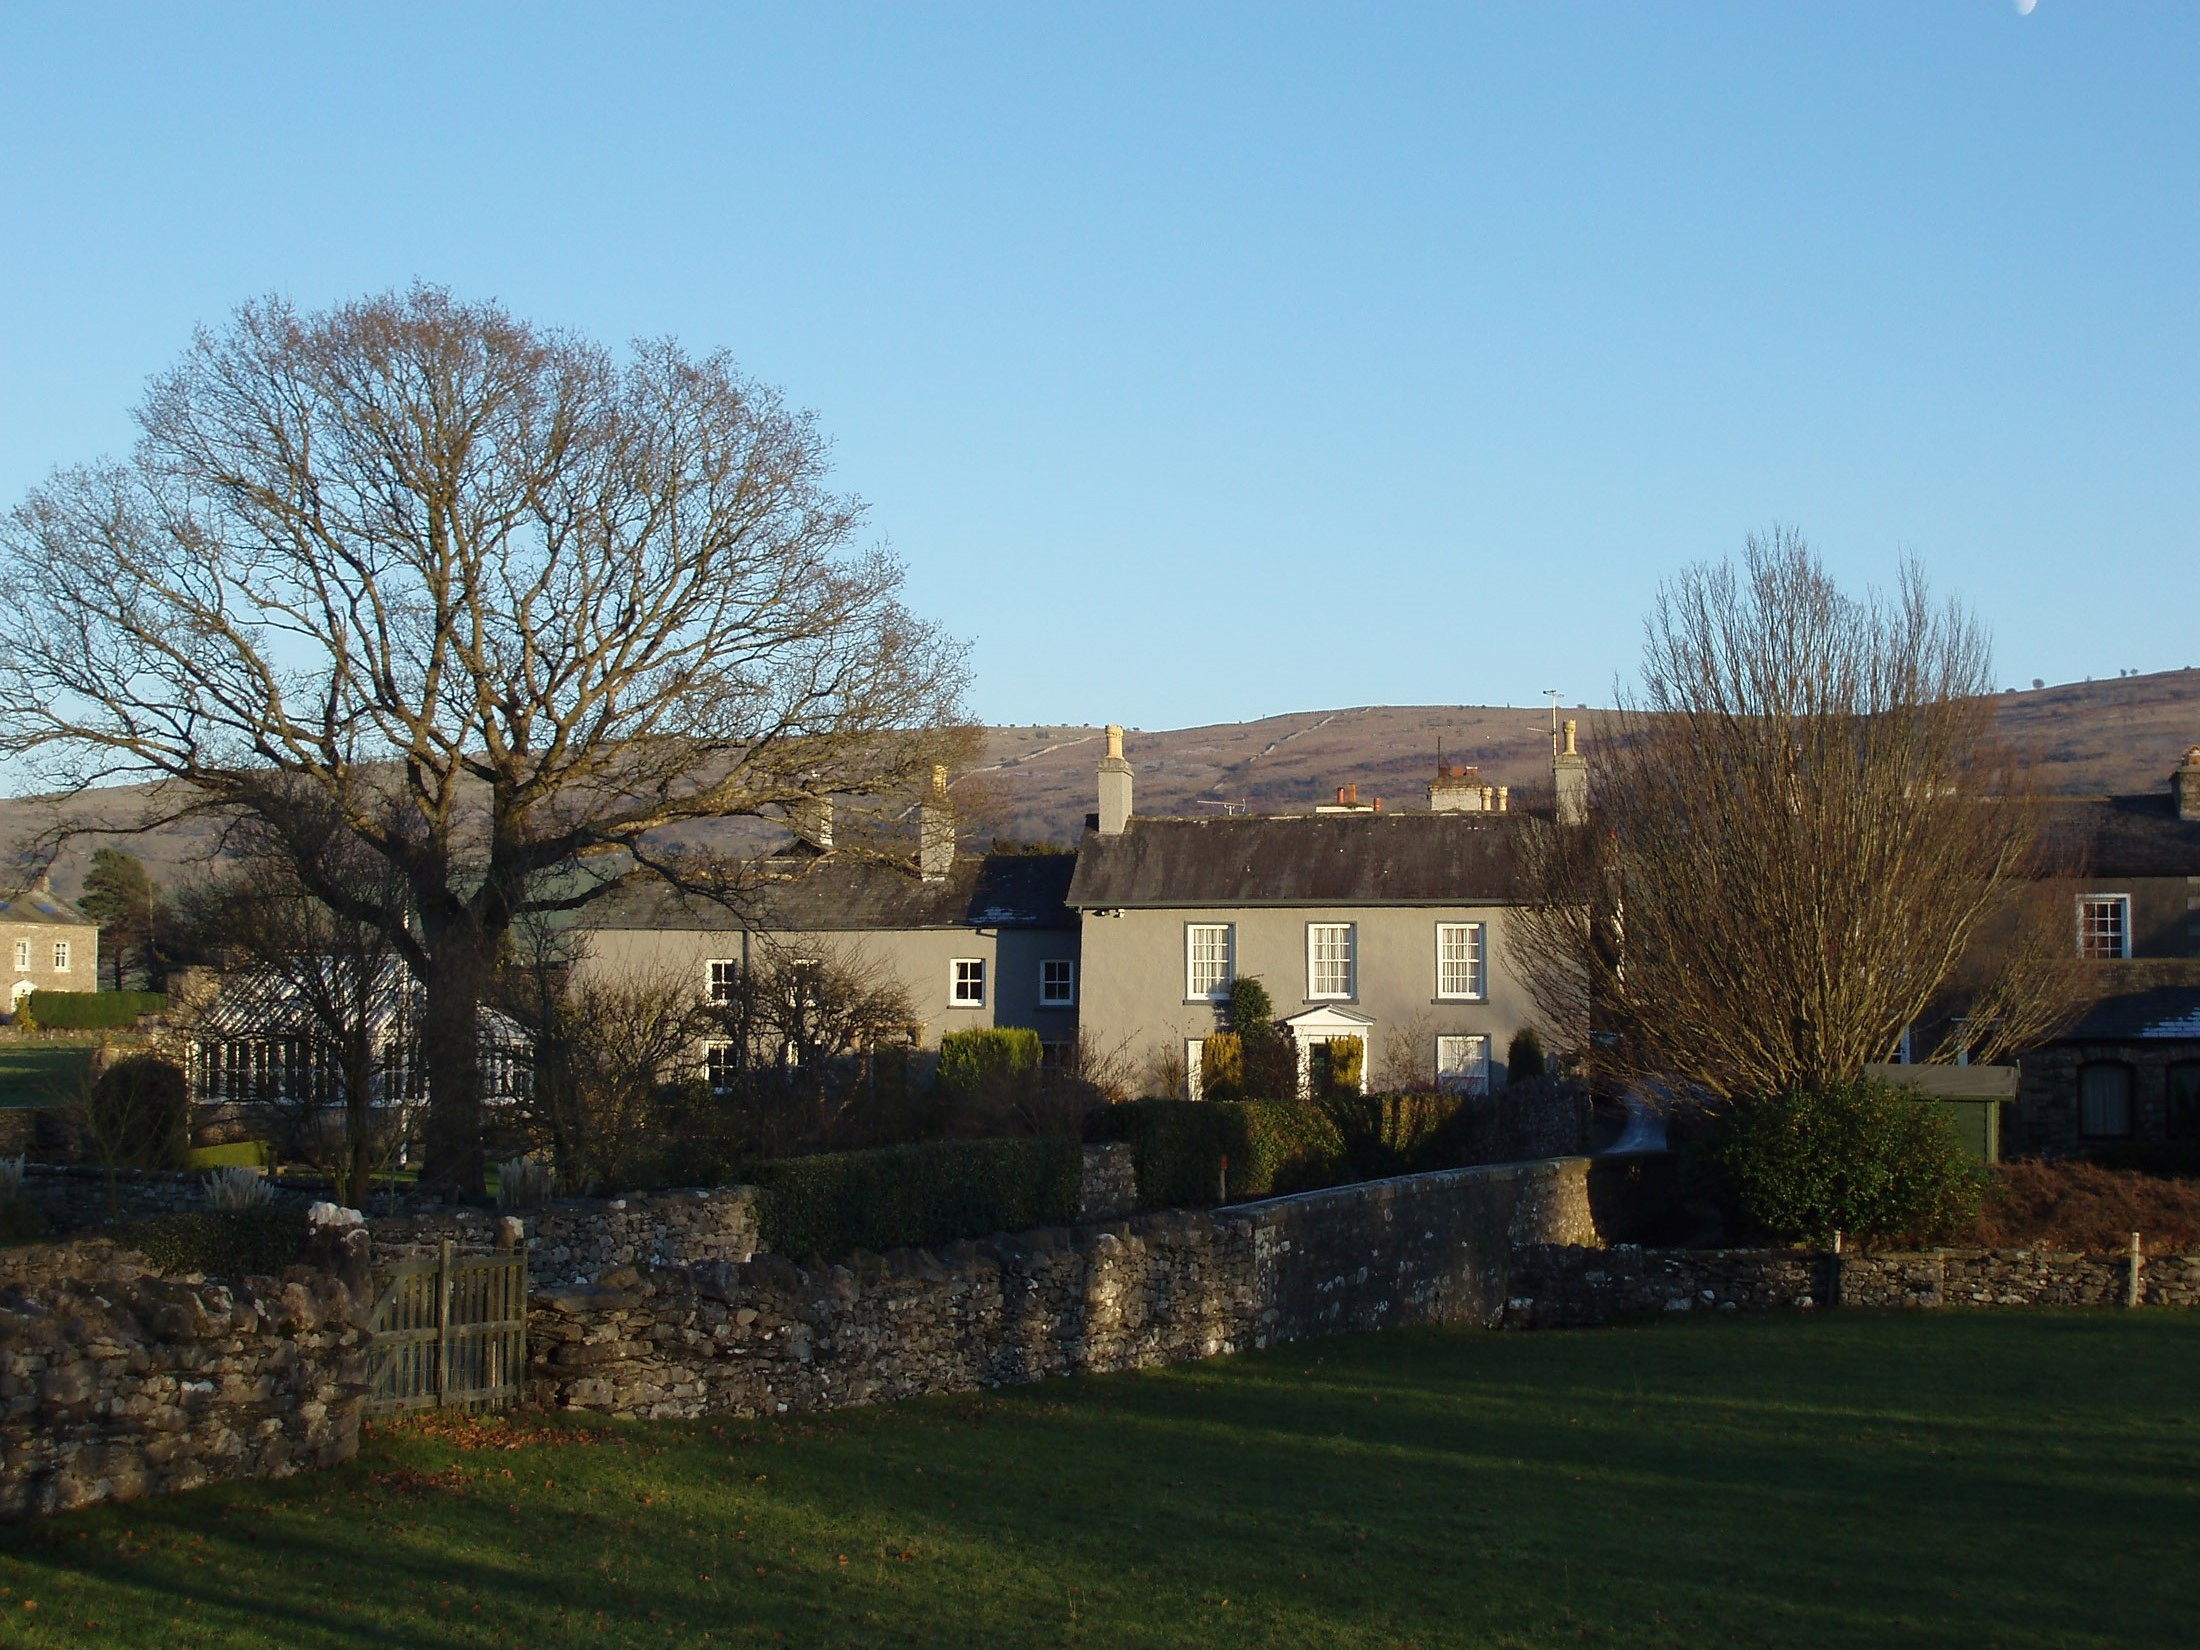 houses in the village of cartmel